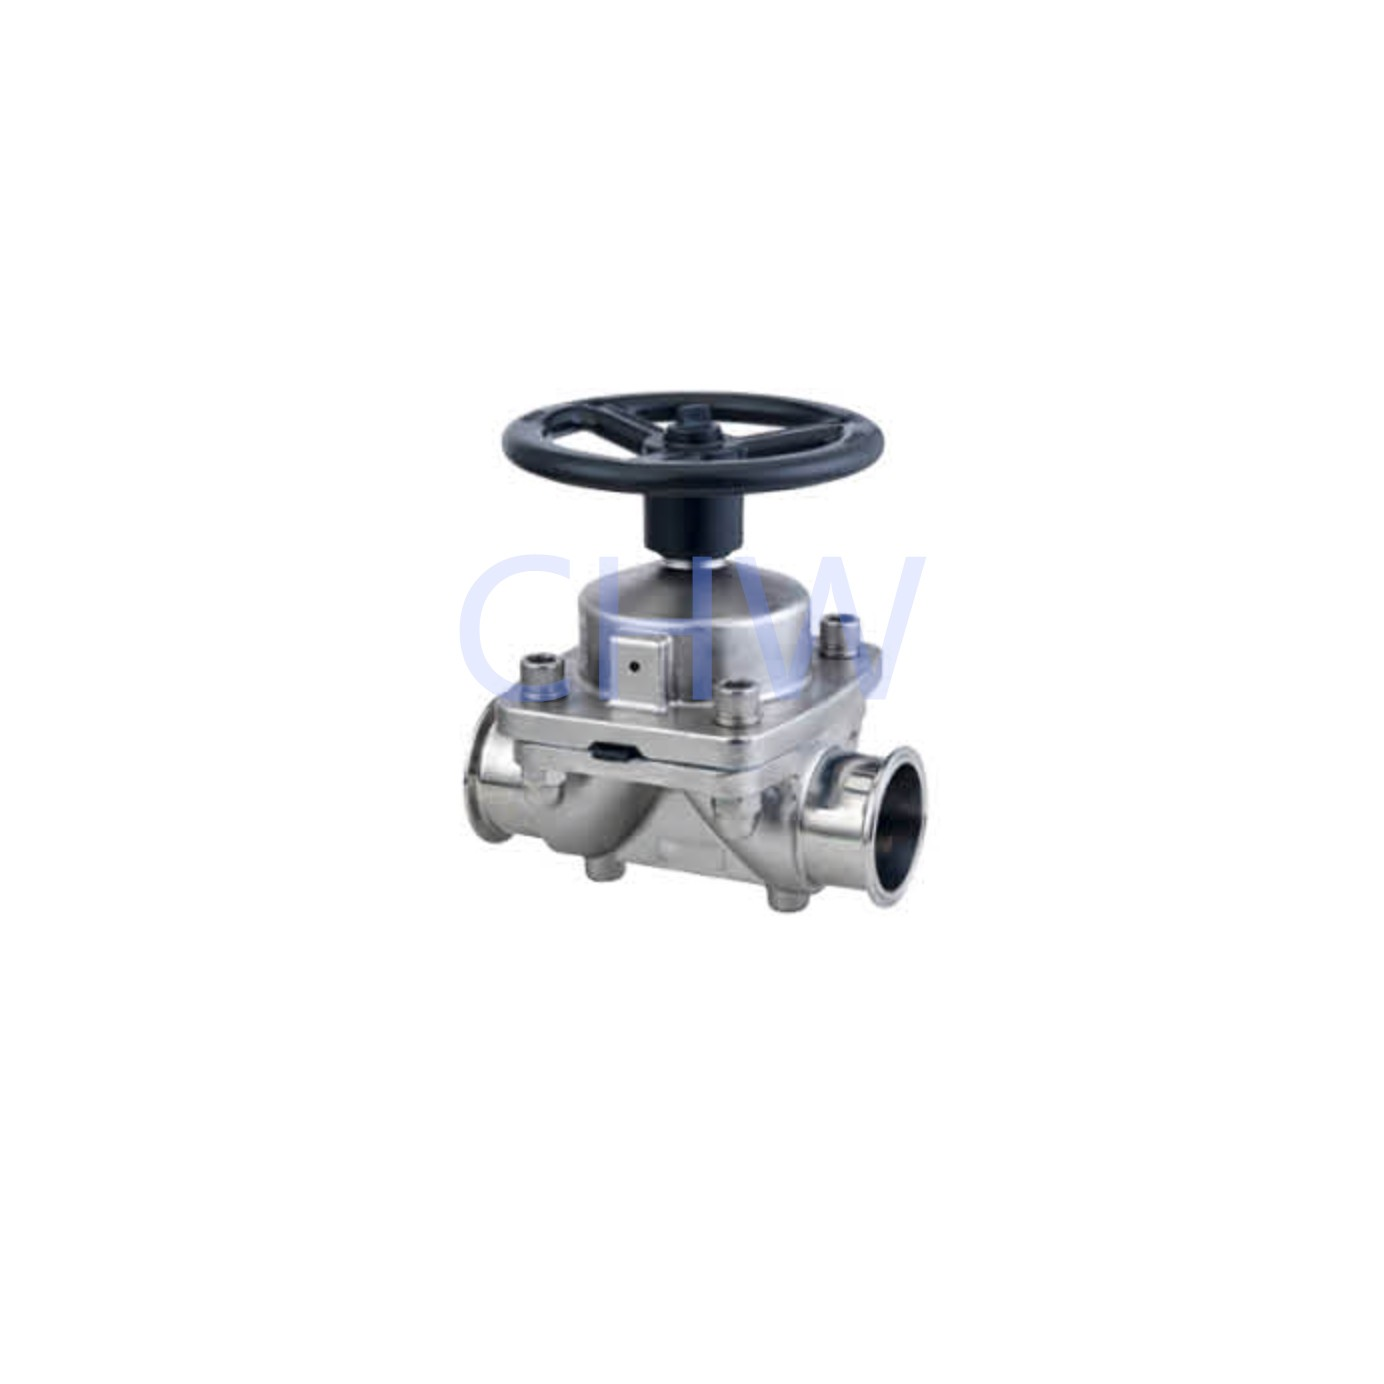 Sanitary stainless steel high quality Manualy Operated Diaphragm Vlave s s304 ss316L DIN SMS ISO 3A BPE IDF AS BS